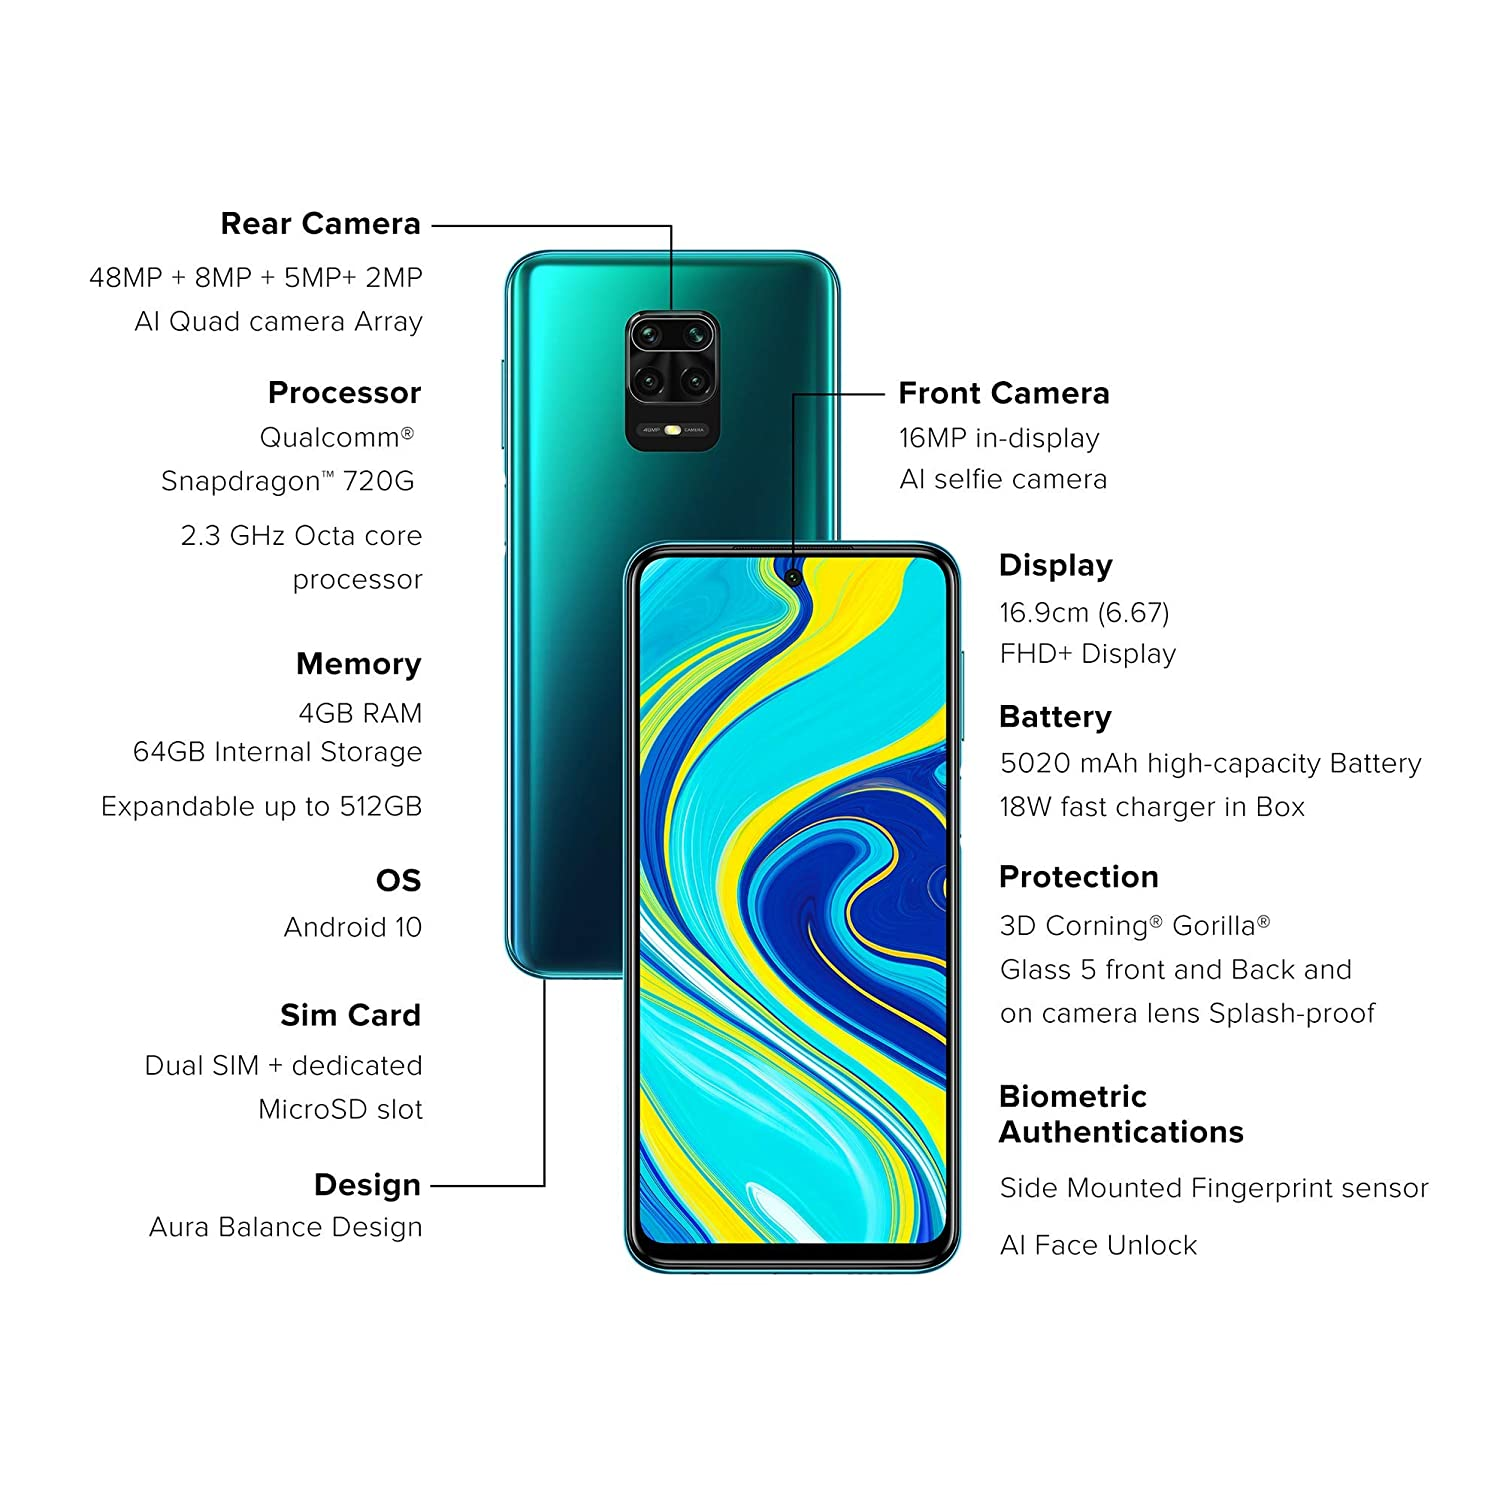 Redmi Note 9 Pro Aurora Blue 4gb Ram 64gb Storage Latest